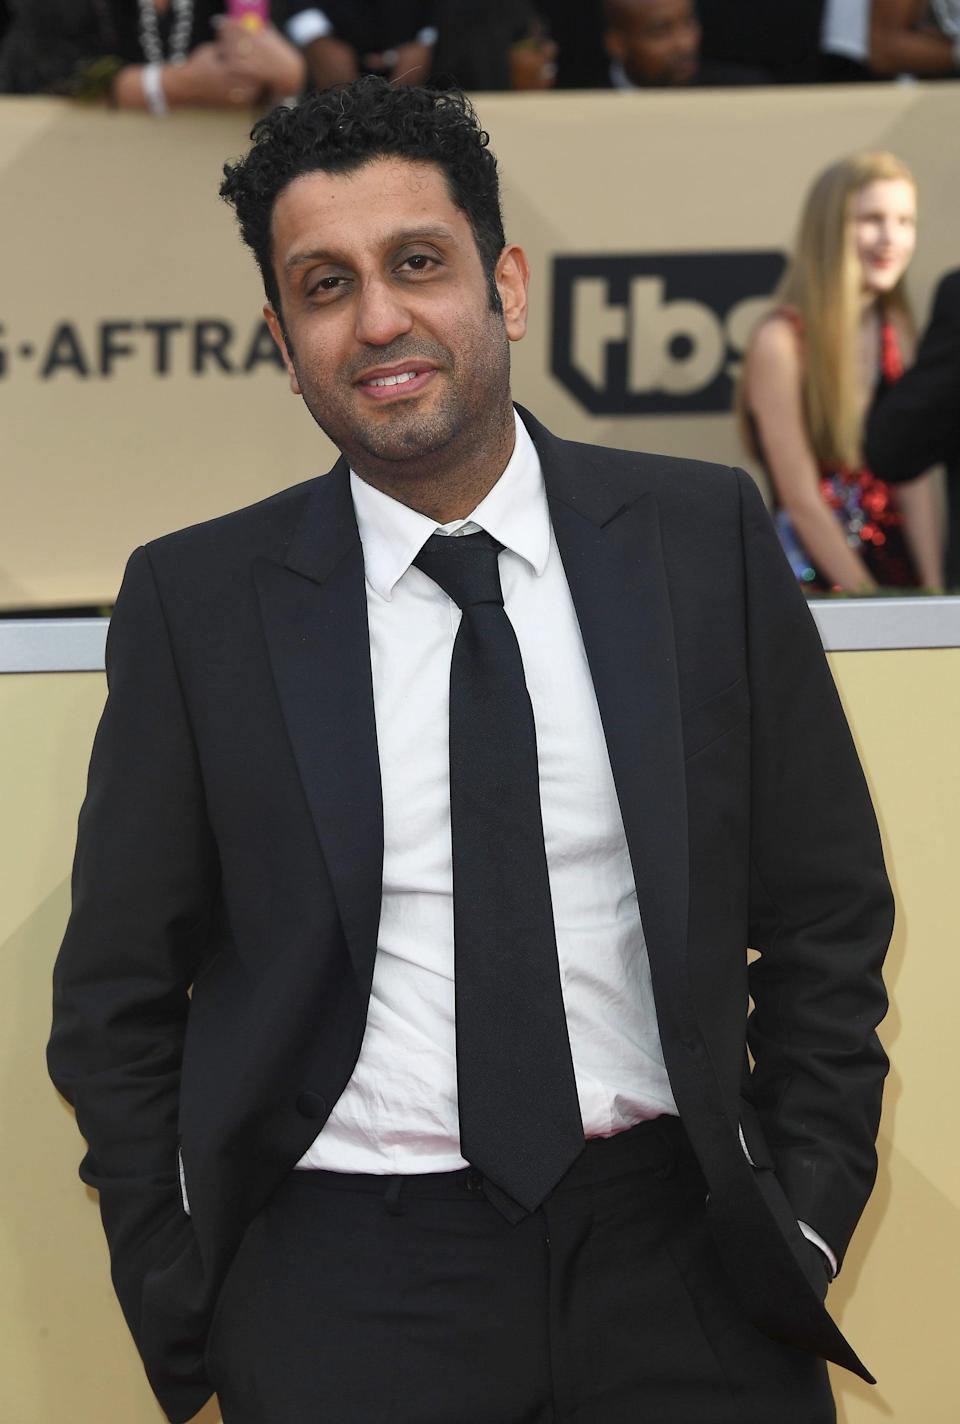 <p>Akhtar, a BAFTA-winning British actor, will be playing Dr. Singh on <strong>Sweet Tooth</strong>. He's a mainstay on British dramas, including <strong>The Night Manager</strong> and <strong>Back to Life</strong>. You also may recognize him from his supporting role as Naveed in <strong>The Big Sick</strong>.</p>